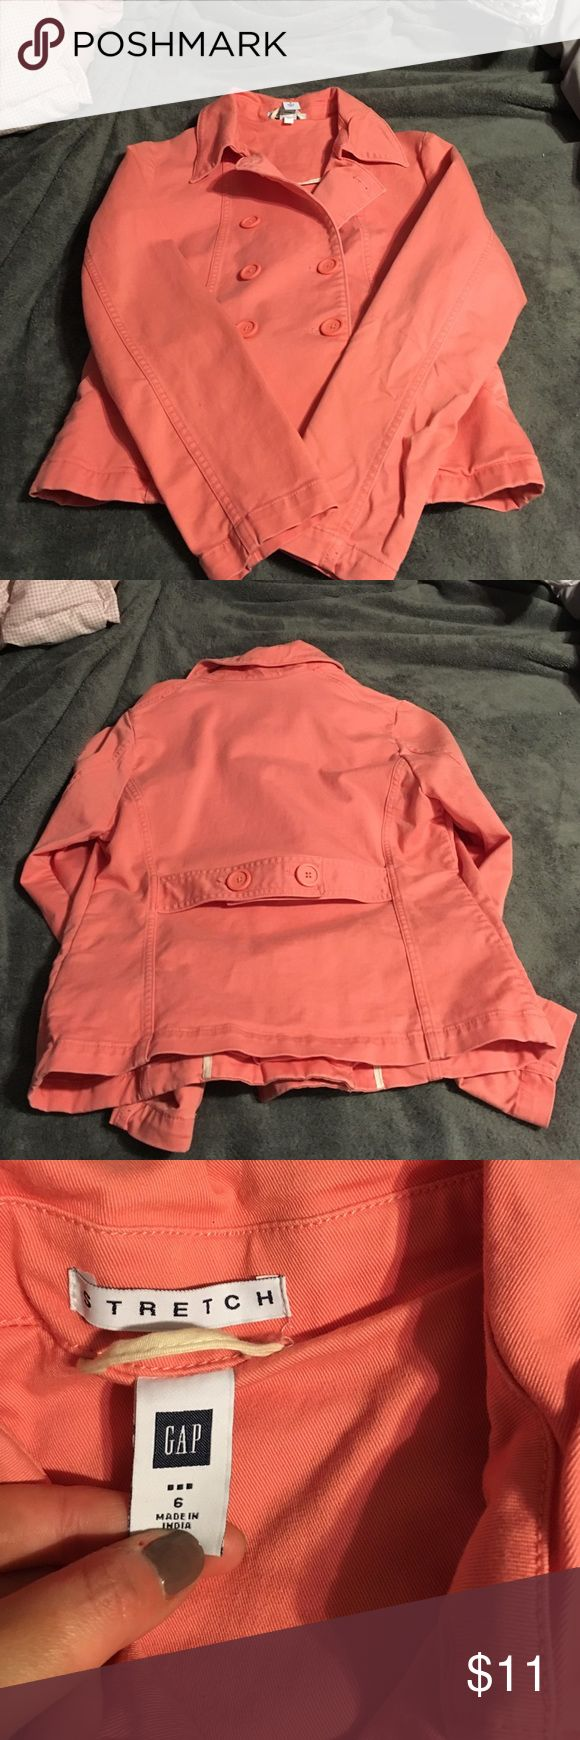 Gap jacket Size 6. Perfect condition. Cute back detail. Orange/peach color. GAP Jackets & Coats Pea Coats